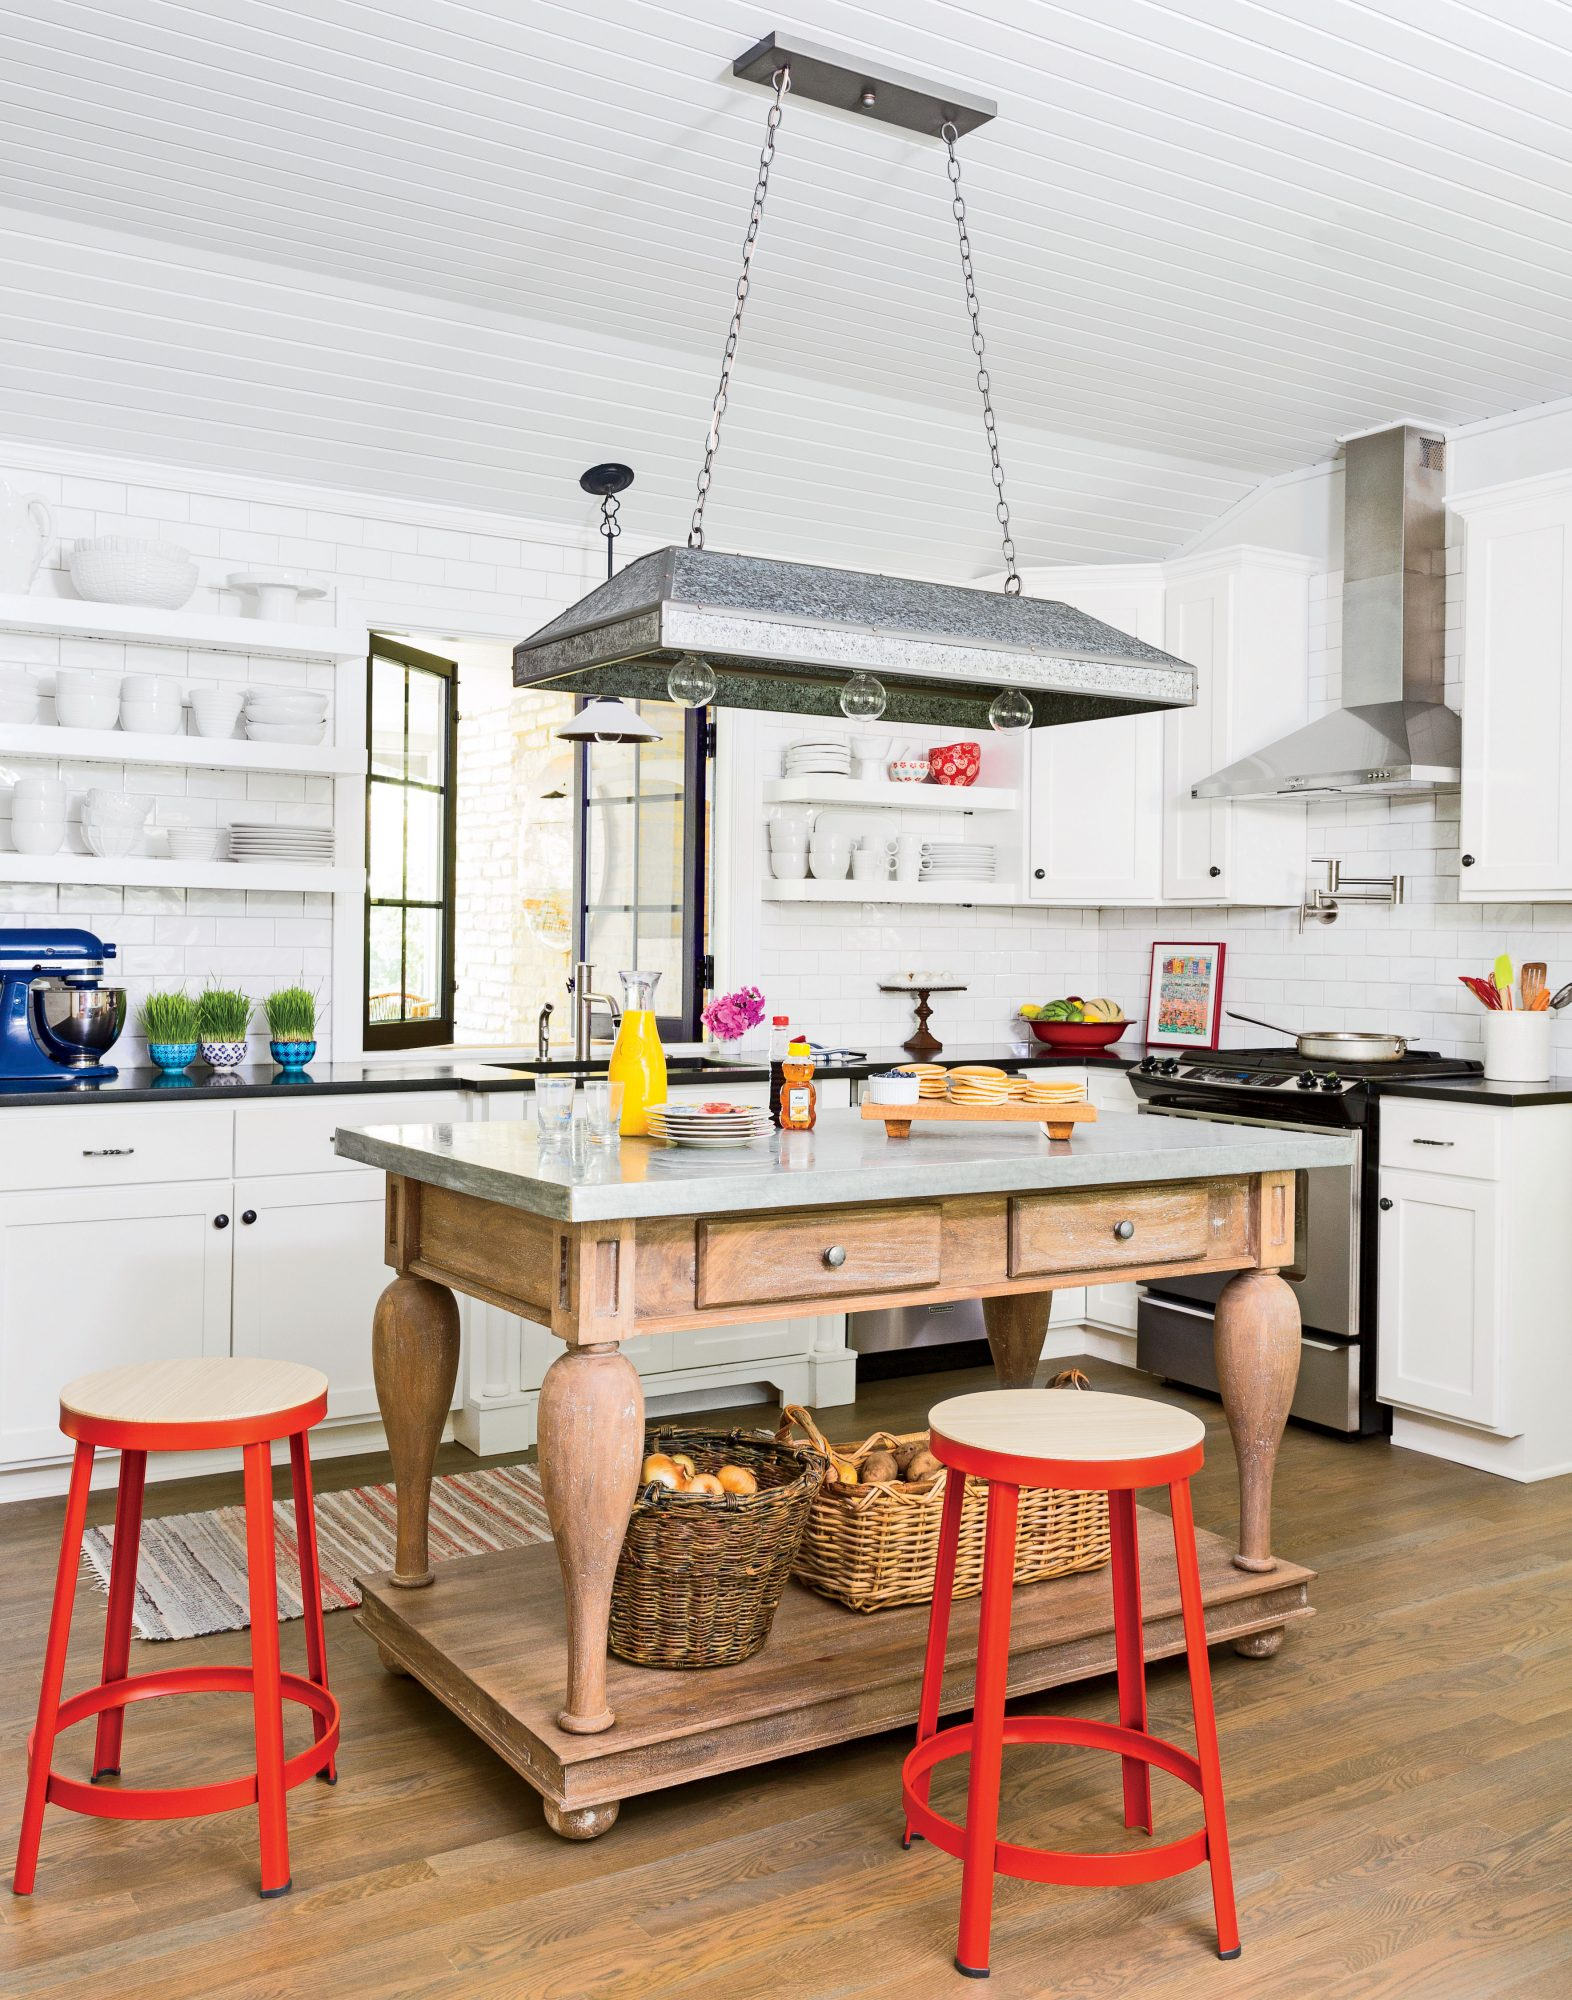 An all-white kitchen plays contrast to this Saugatuck, Michigan, cottage's surrounding, colorful rooms. Pops of primary colors—red stools and a blue stand mixer—add interest.